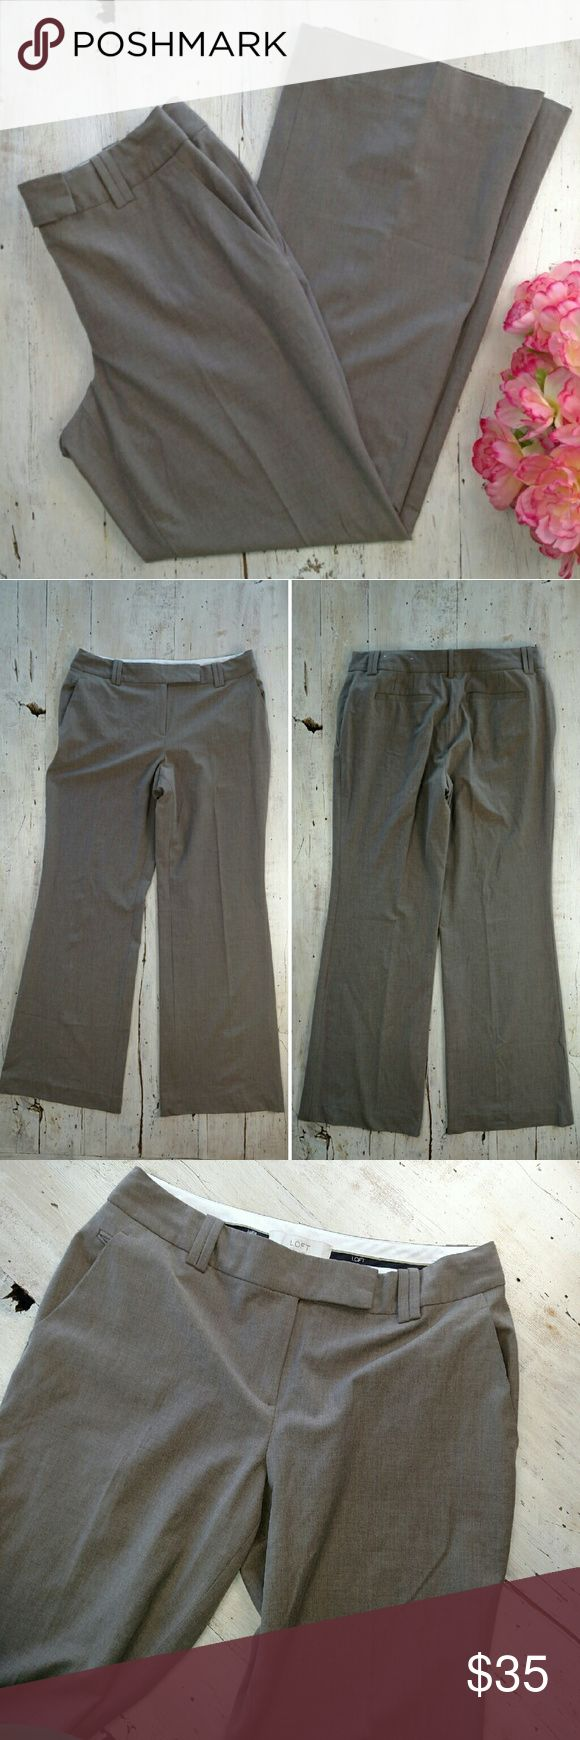 """LOFT """"Julie"""" Brown Pant Made for the ladies who have a smaller waist but curvy hips. Slight boot cut pant with a relaxed leg. 32"""" inseam, 10"""" rise, and 16.5"""" across waist; laid flat. 51% rayon 46% polyester 3% spandex. No trades! EUC LOFT Pants"""